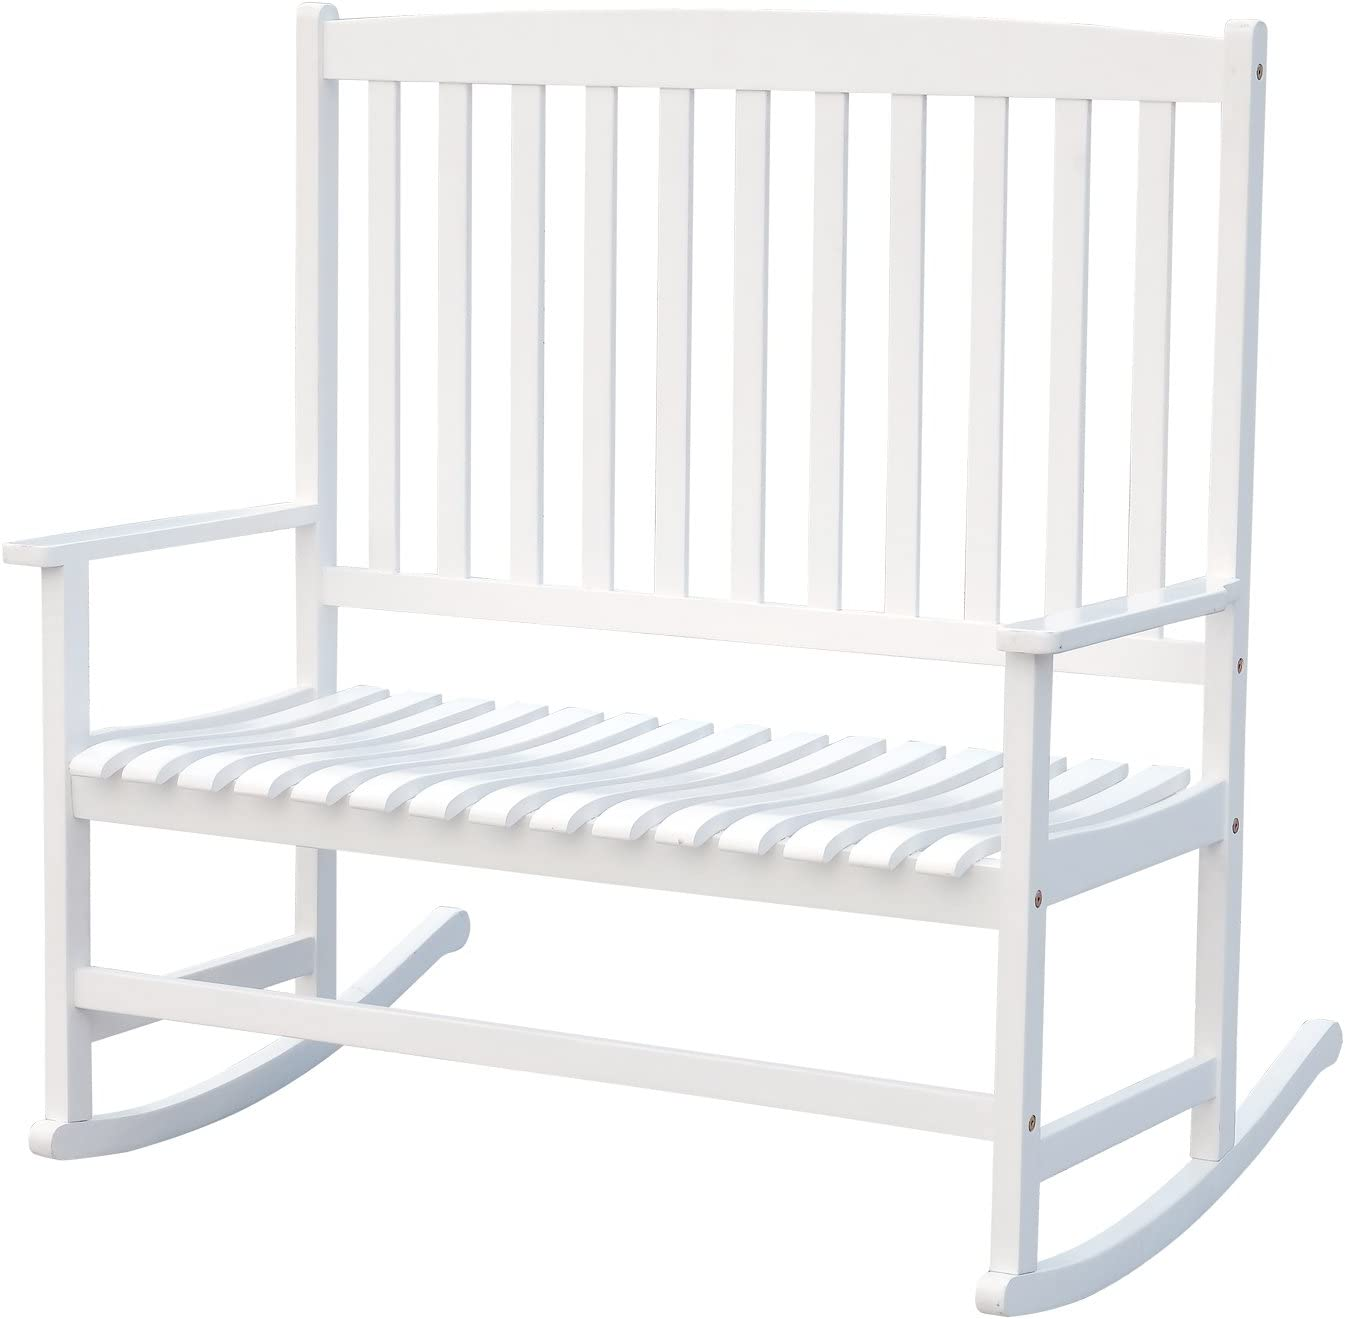 Outsunny 46 2-Person Acacia Wood Outdoor Porch Rocking Chair with Armrest – White